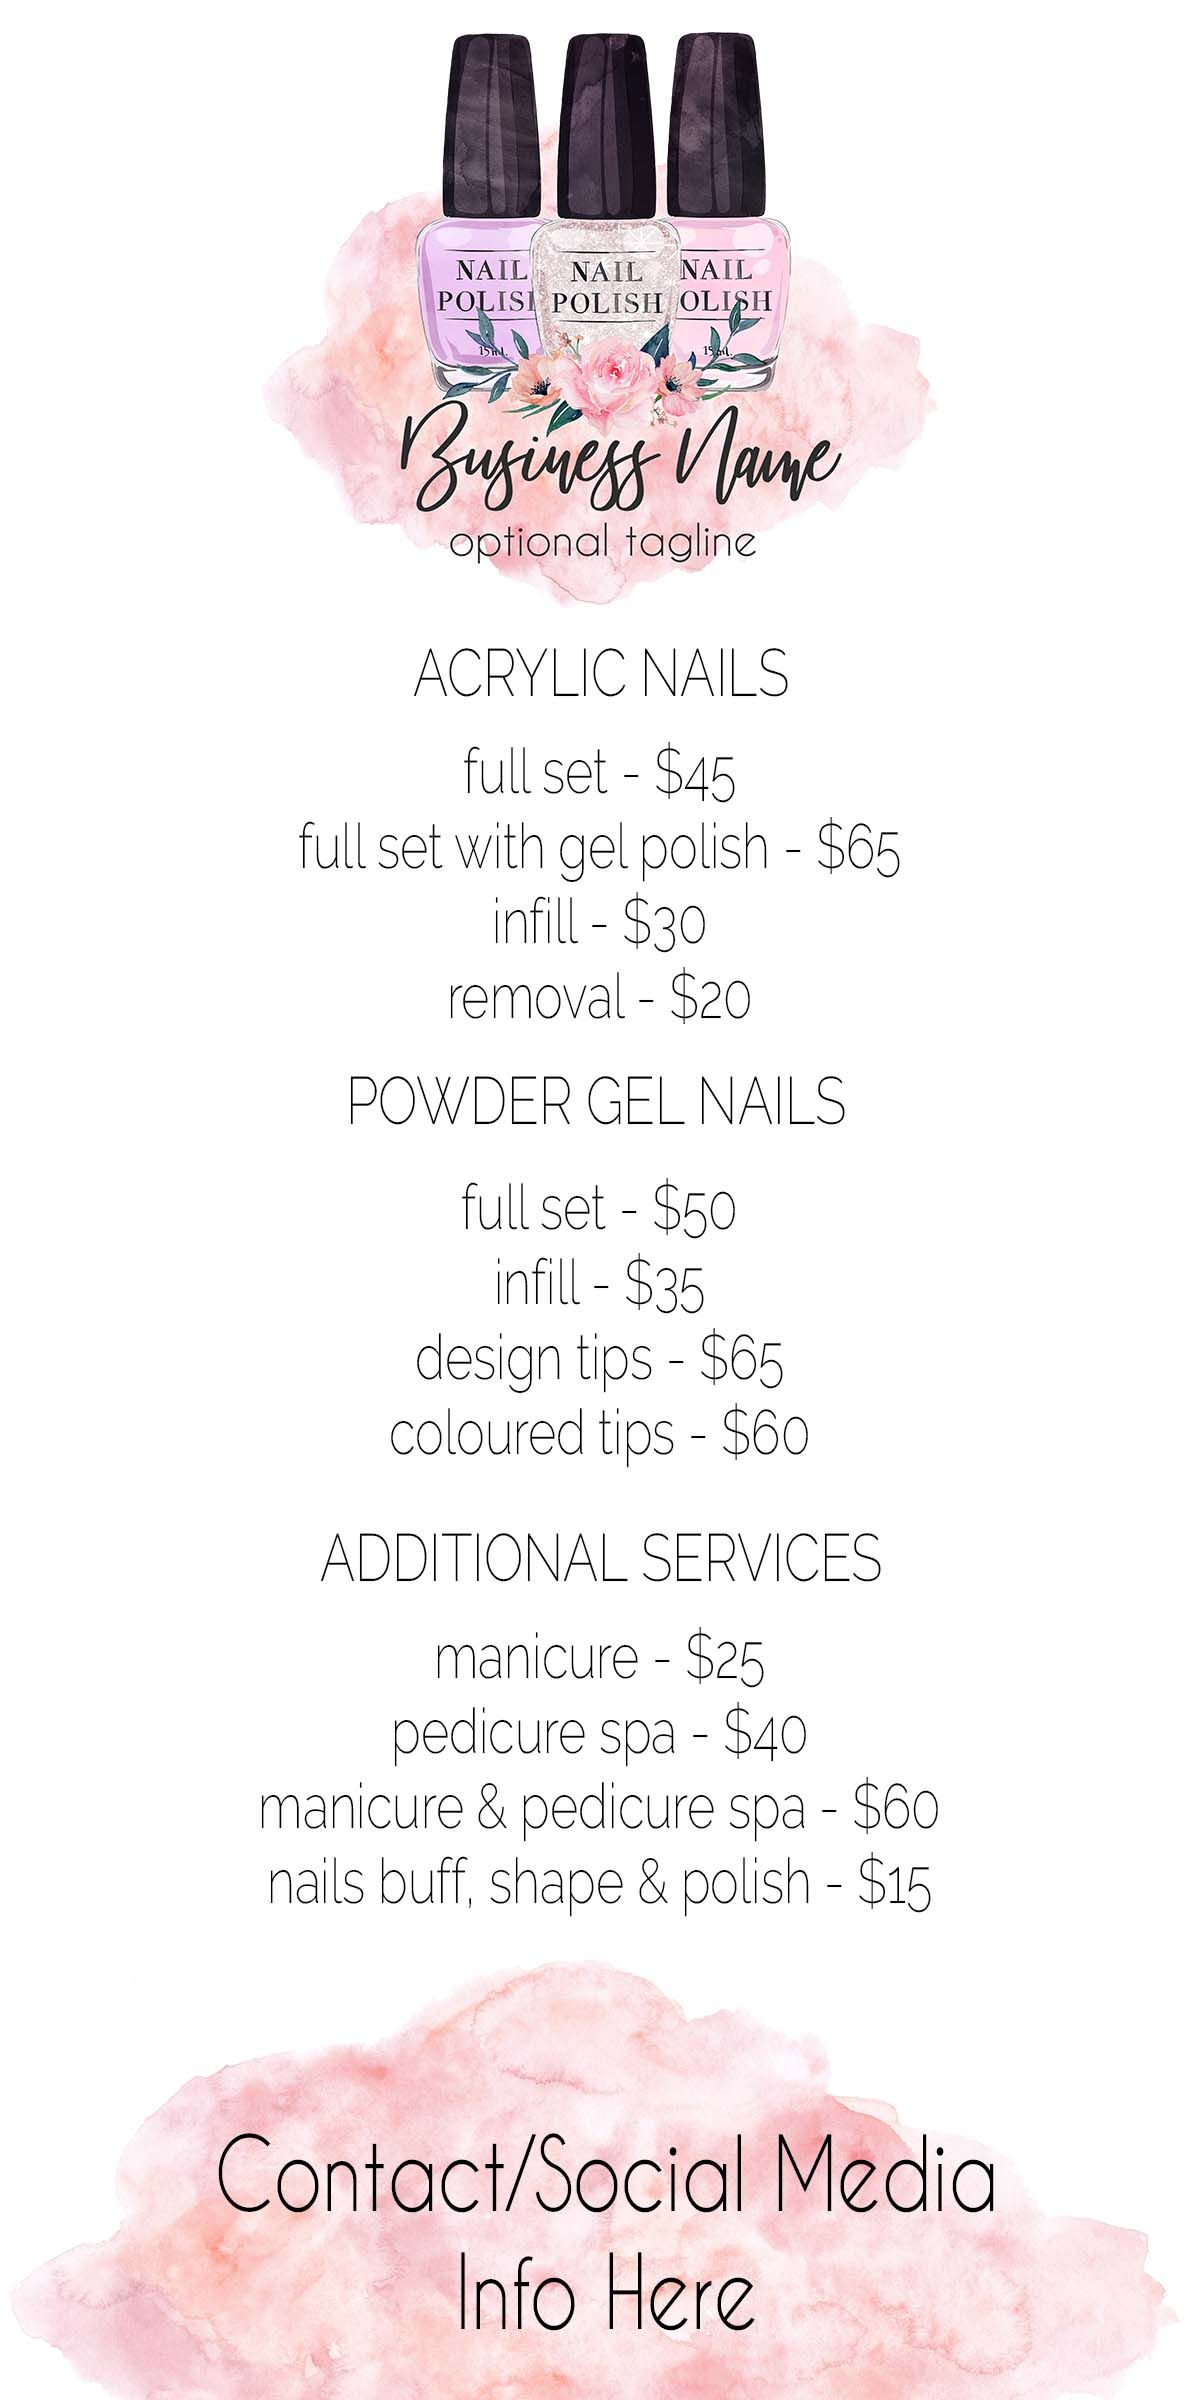 Nail Services Salon Price List Template - Blue Layouts